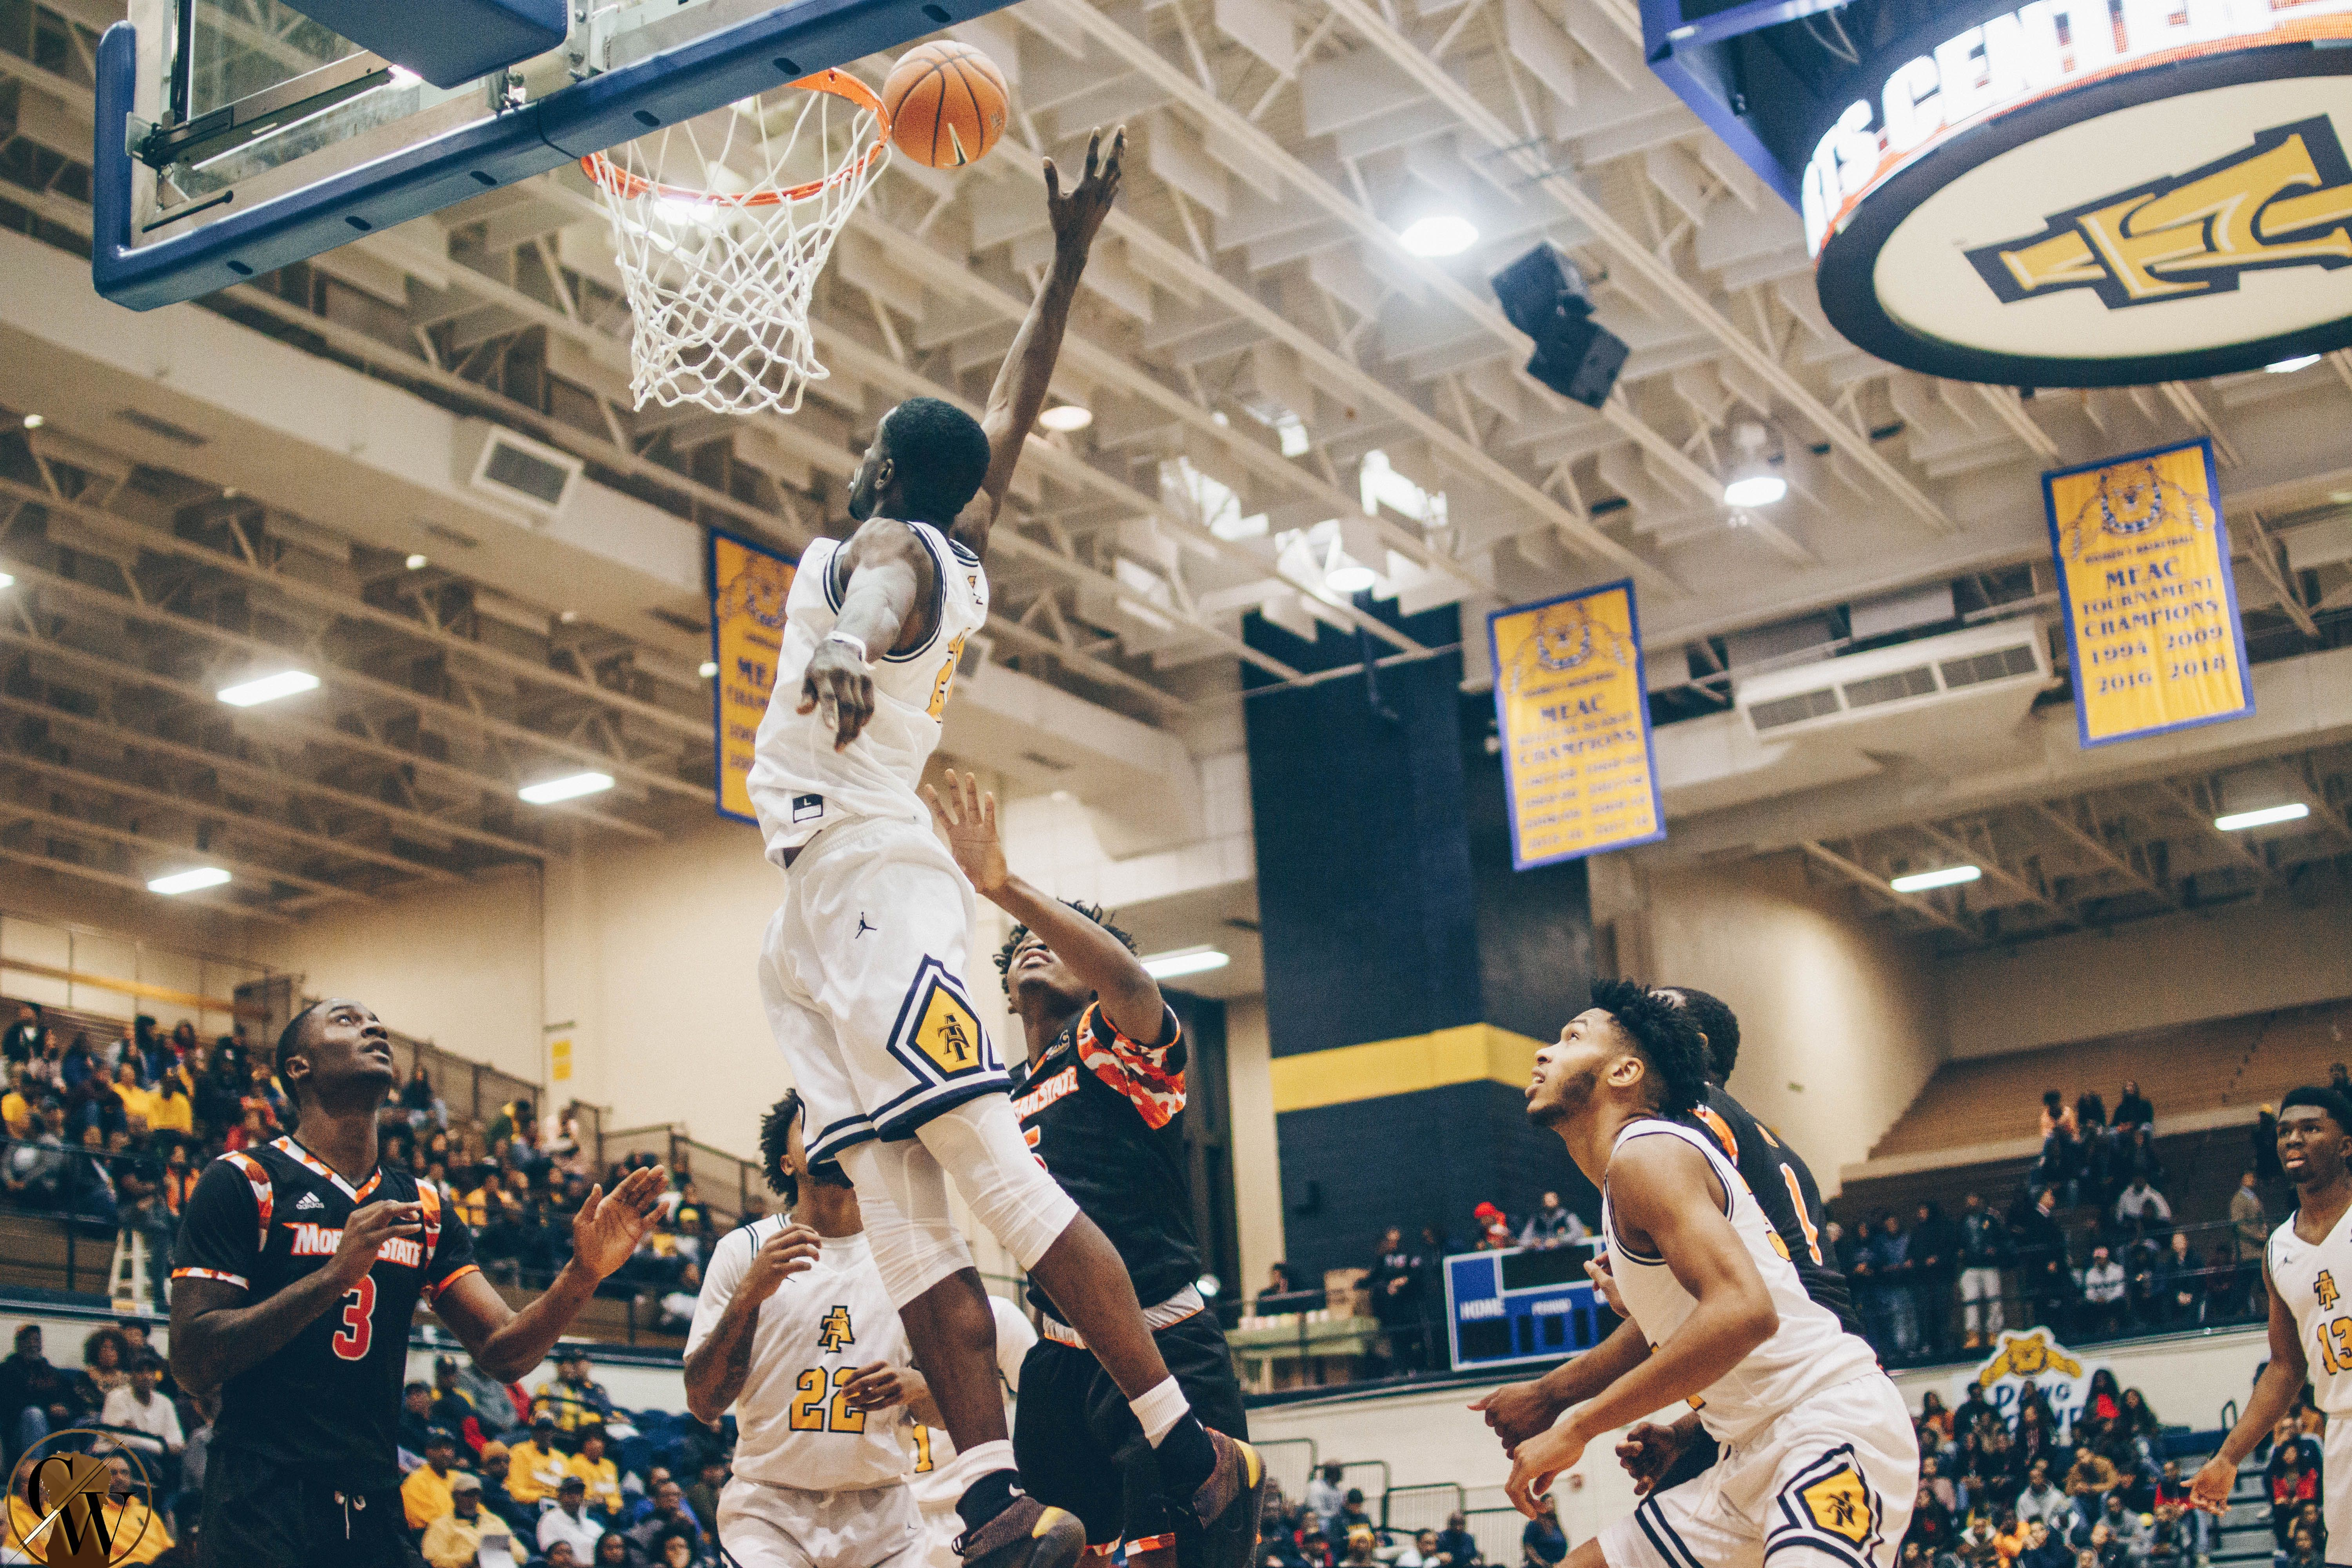 NSU, A&T stay atop the MEAC as NCCU falls - HBCU Gameday